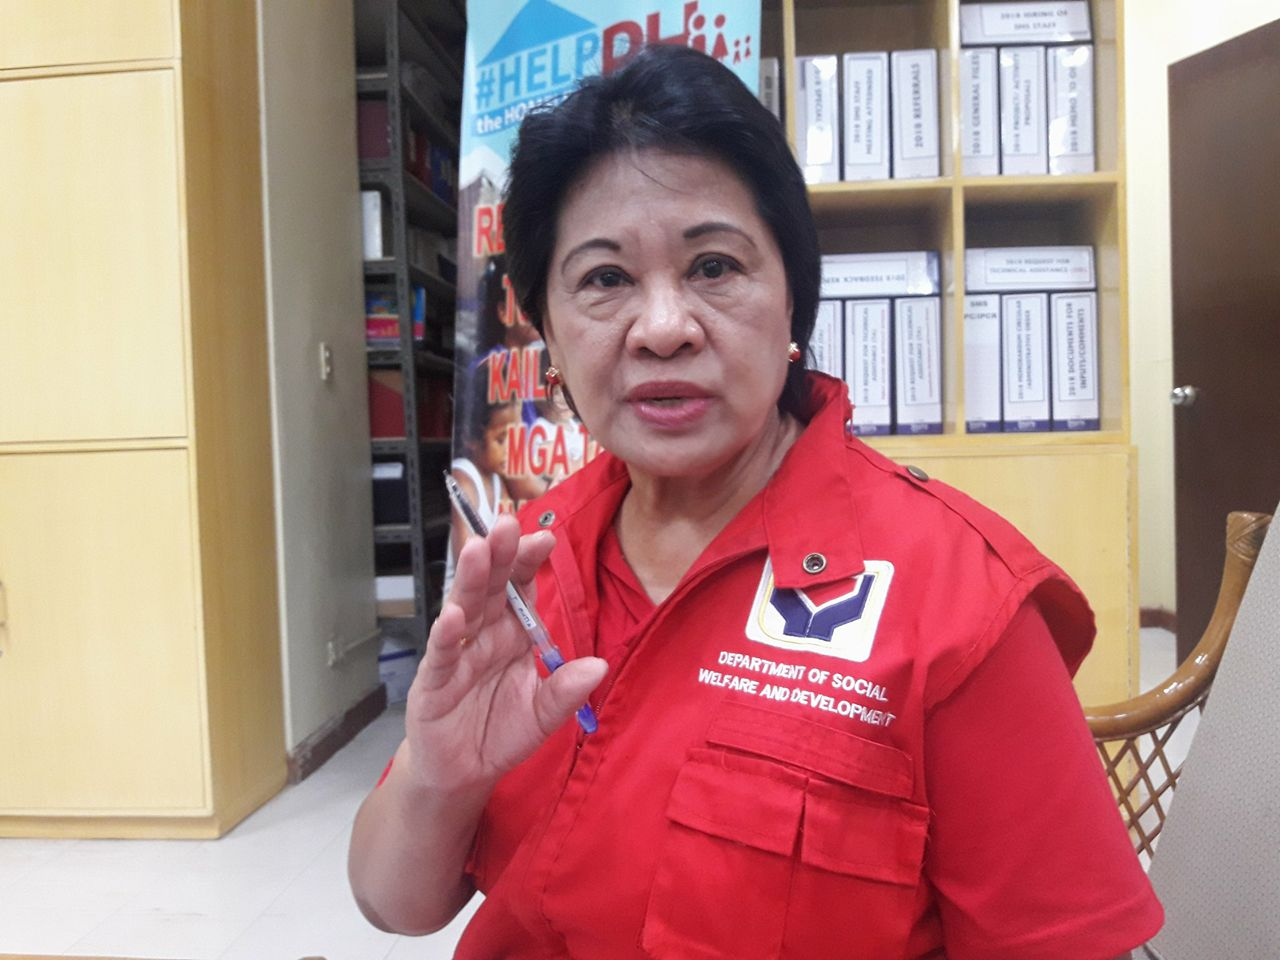 Perlita Panganiban, DSWD OIC Social Welfare Attache Officer, said repatriated mothers/fathers with children from Kuwait are given PHP5,000 immediate financial assistance upon their return to the country. (PNA photo by Leilani S. Junio)